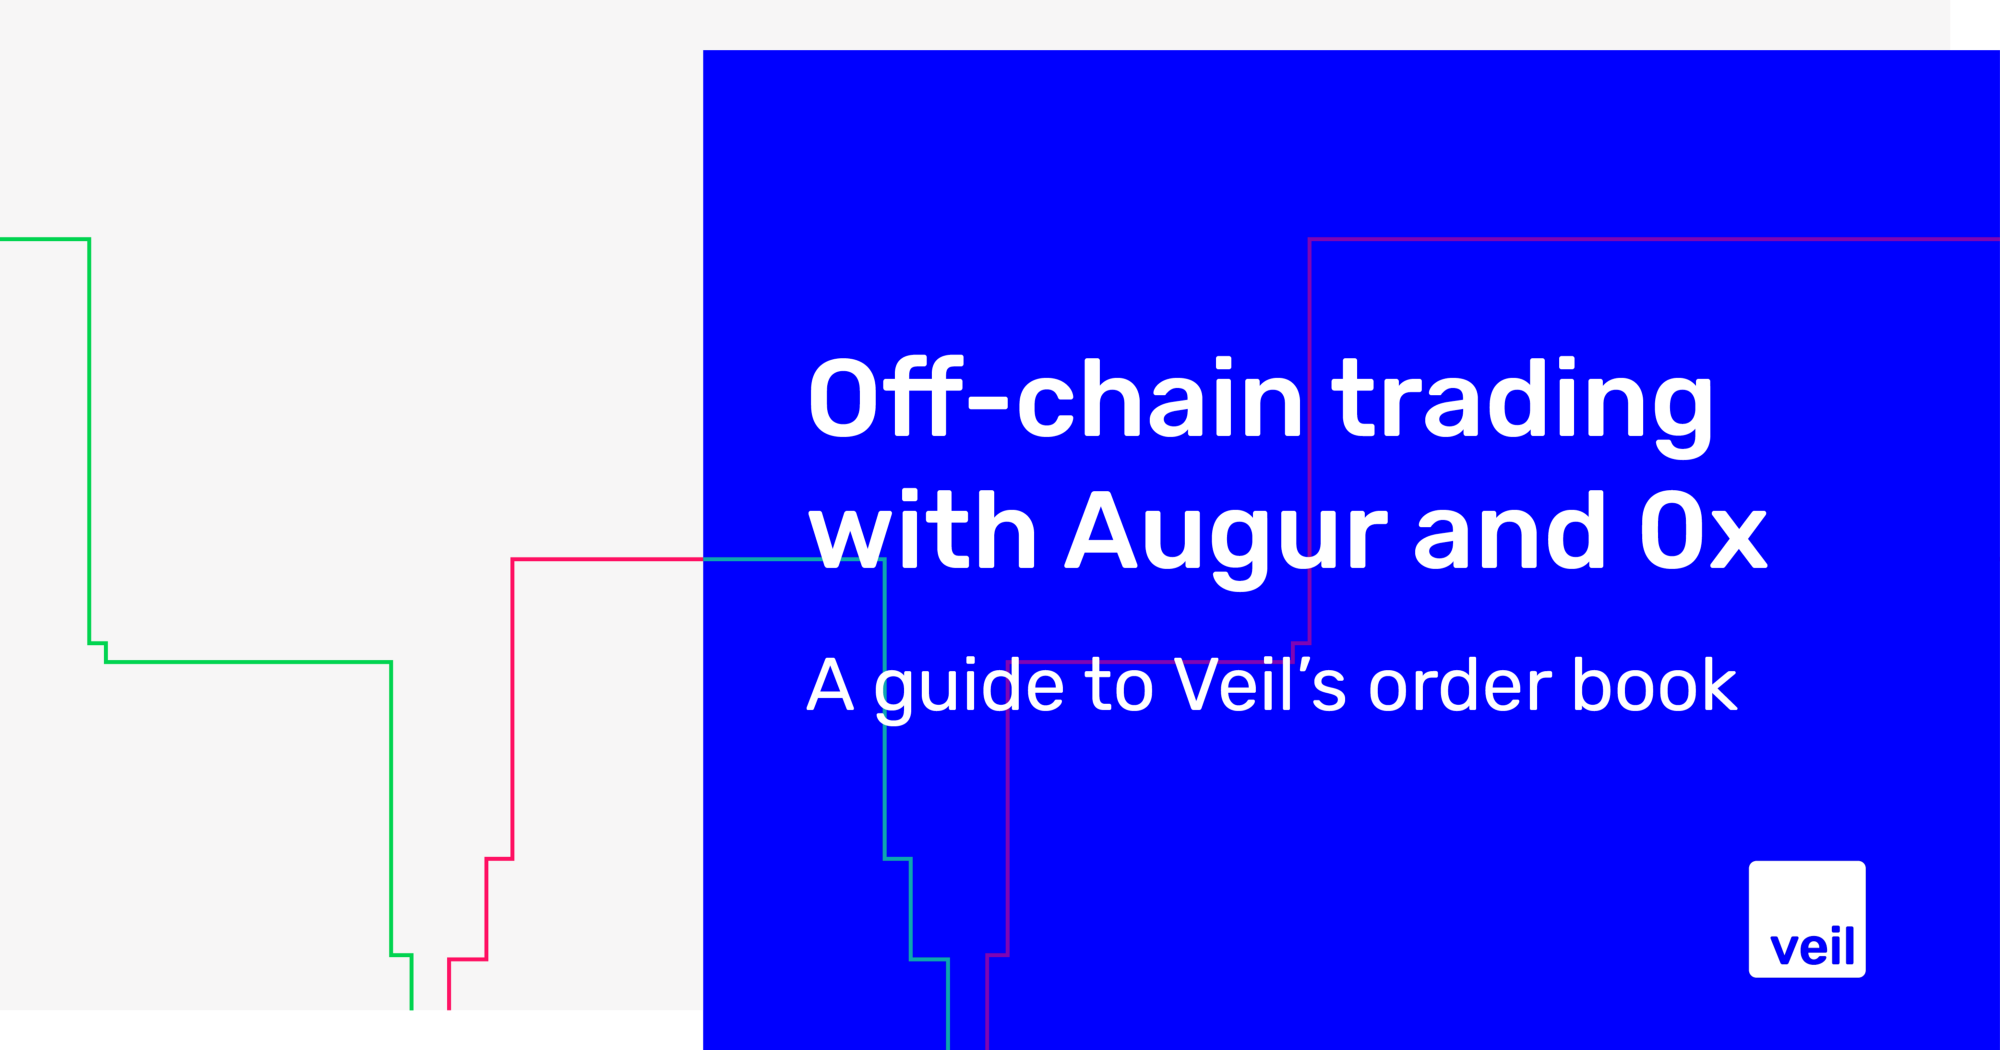 Off-chain trading with Augur and 0x